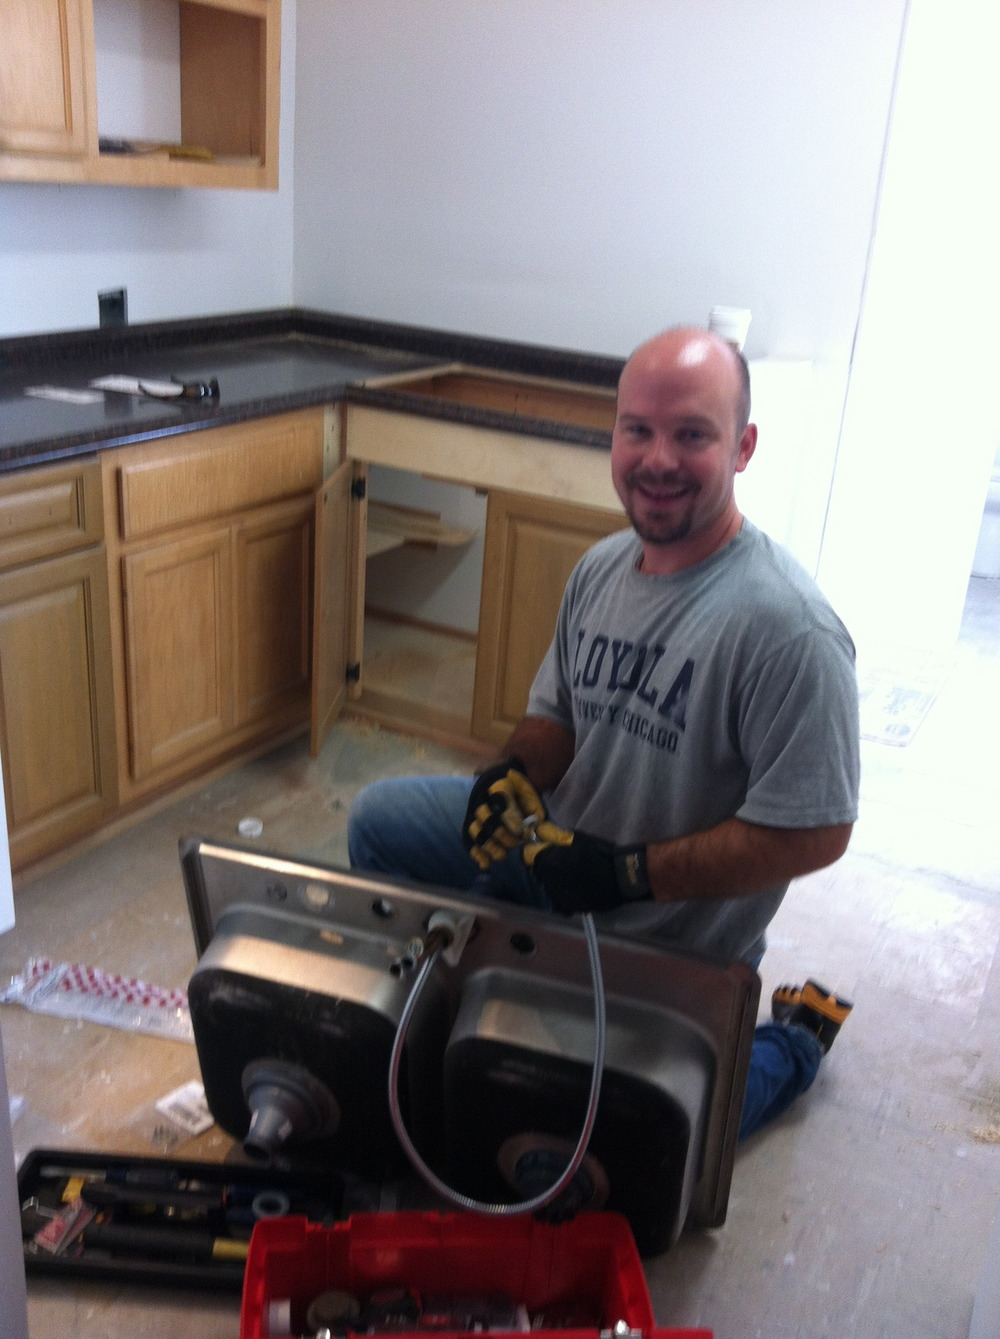 Yippiee - Thanks Jon at Habitat for Humanity SB - our kitchen is almost there !!!!